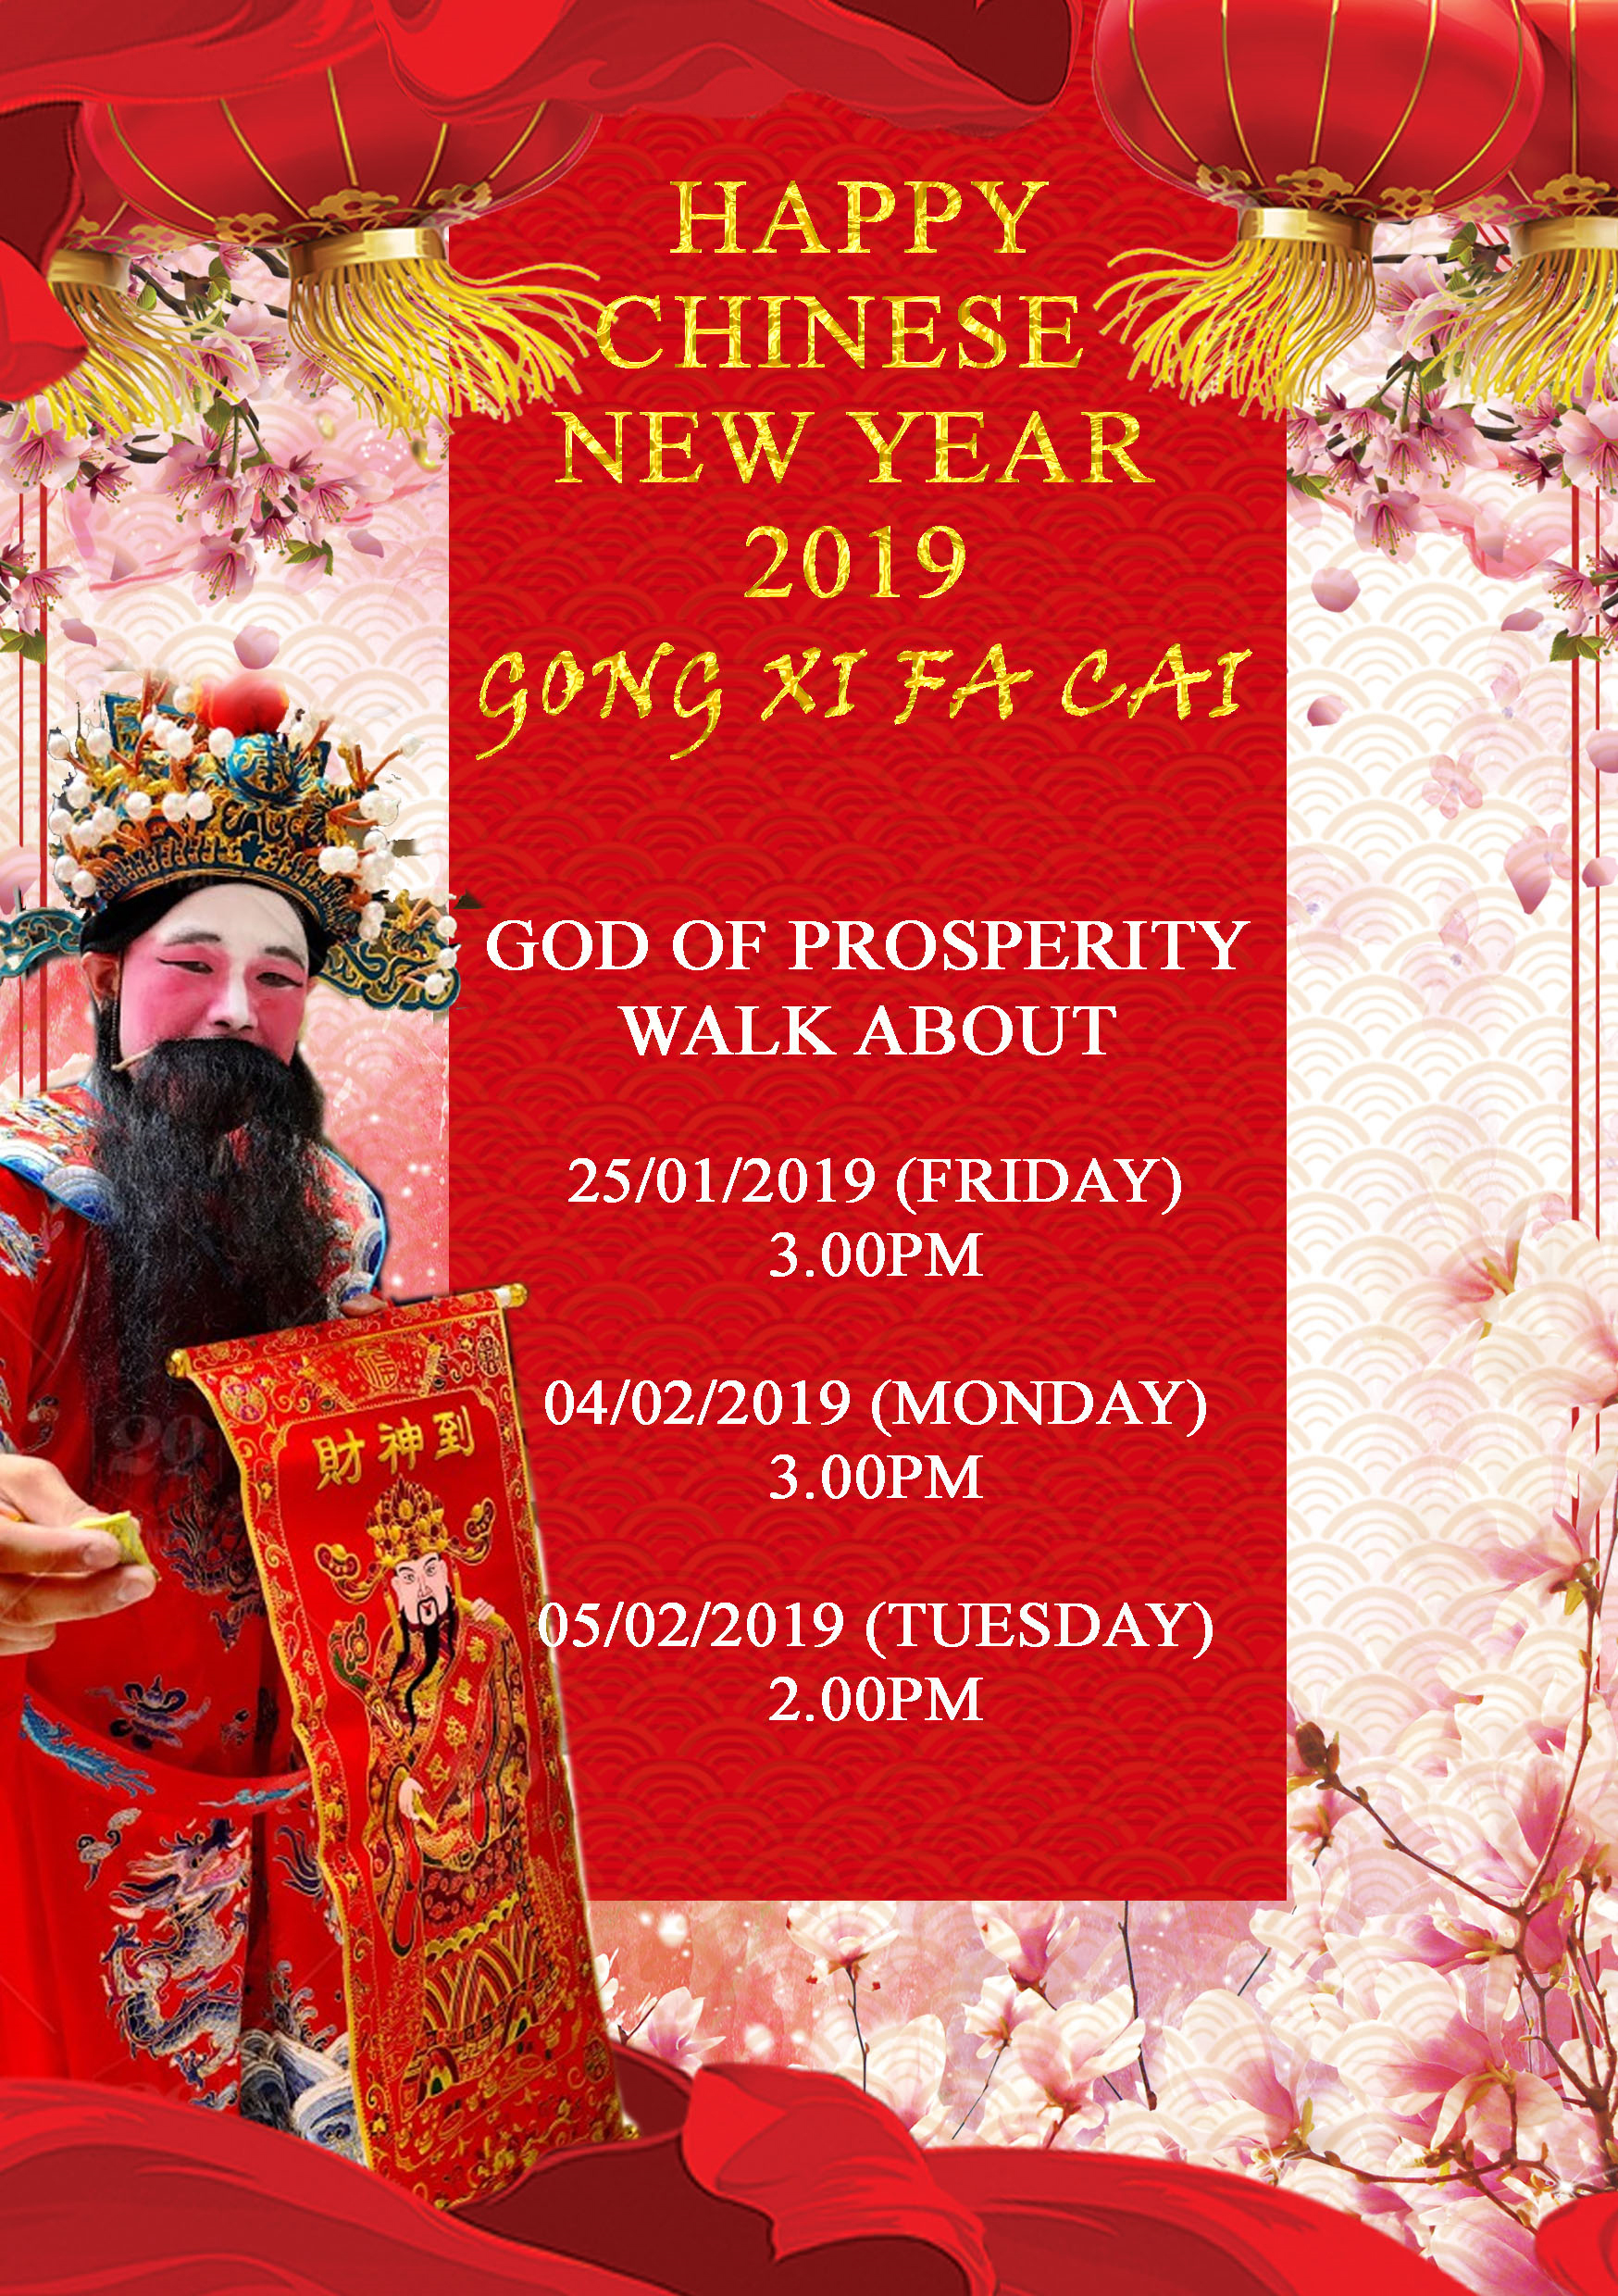 God Of Prosperity Walkabout For Chinese New Year 2019